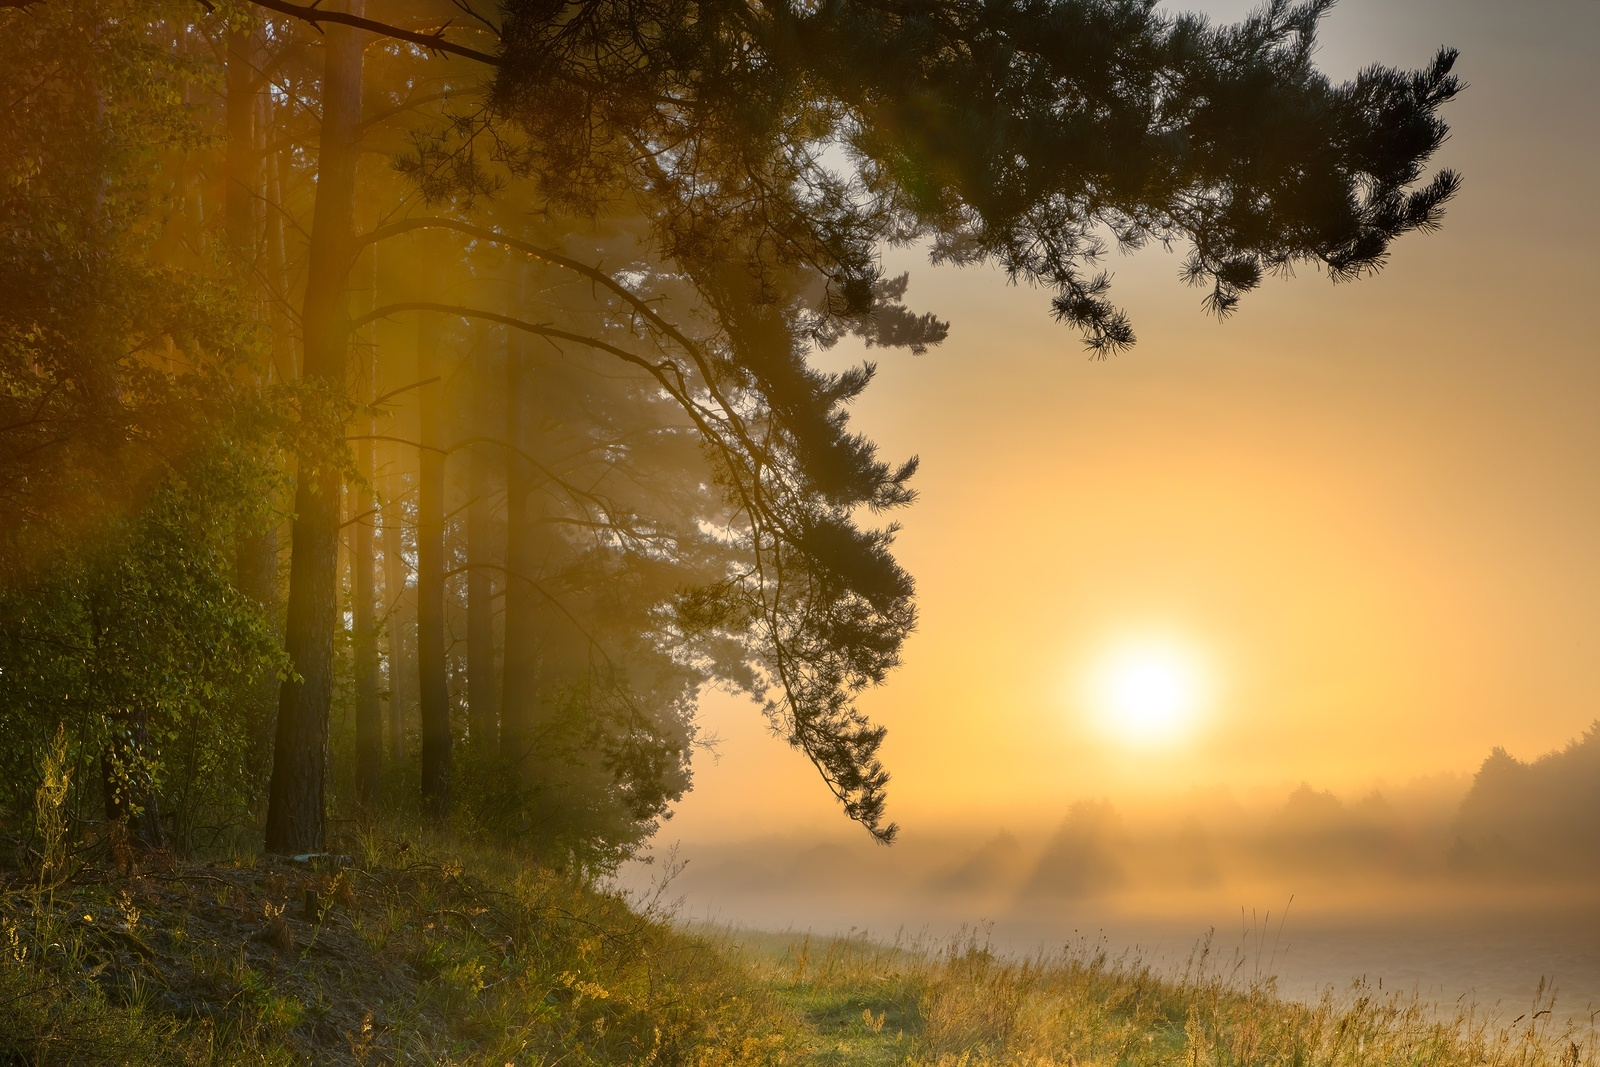 bigstock-Foggy-Morning-On-Polish-Meadow-86146340.jpg